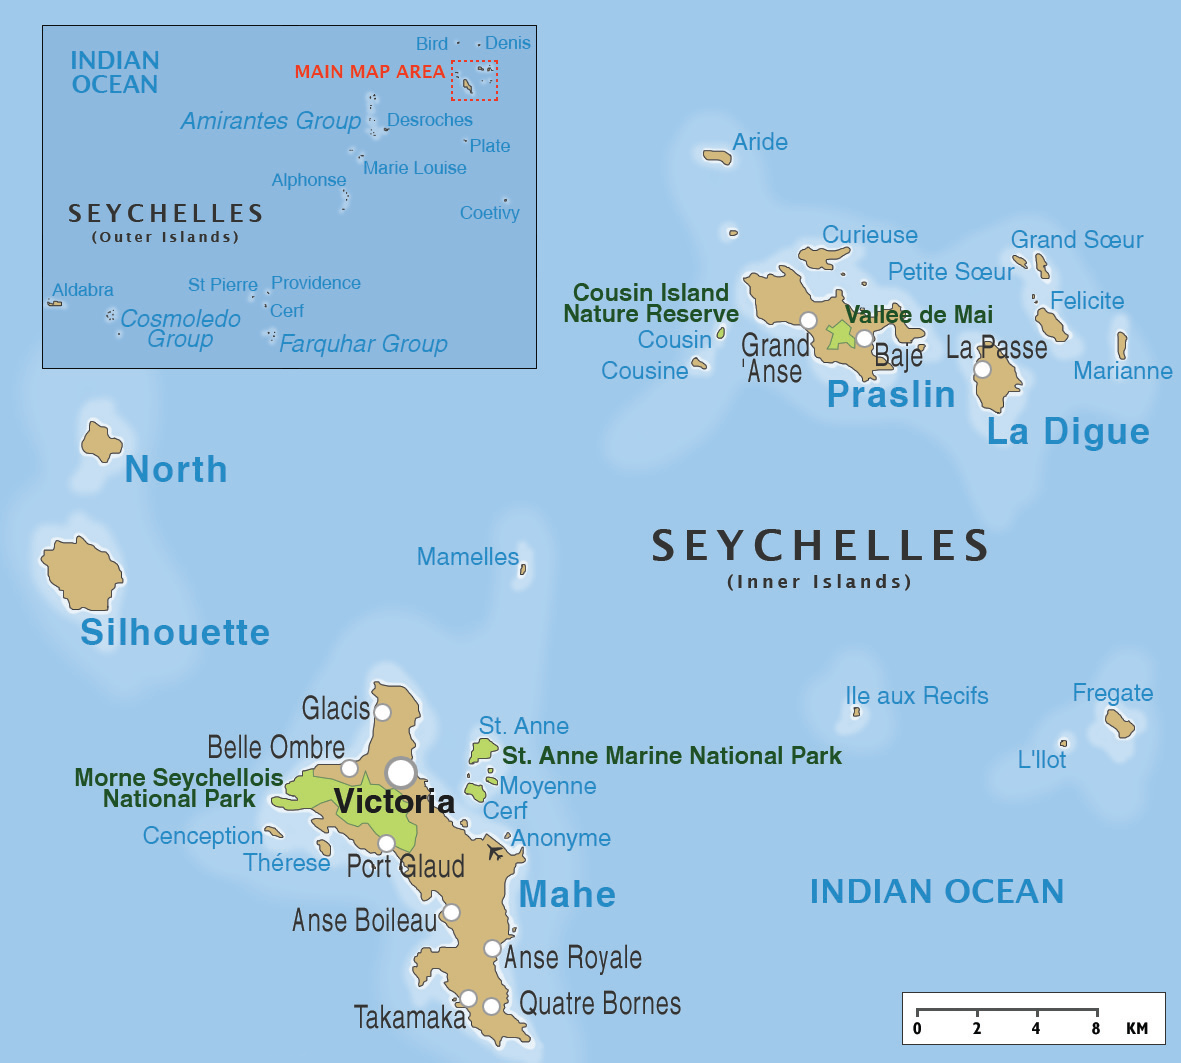 Seychelles Day Of Round The World In Days - Map of seychelles world